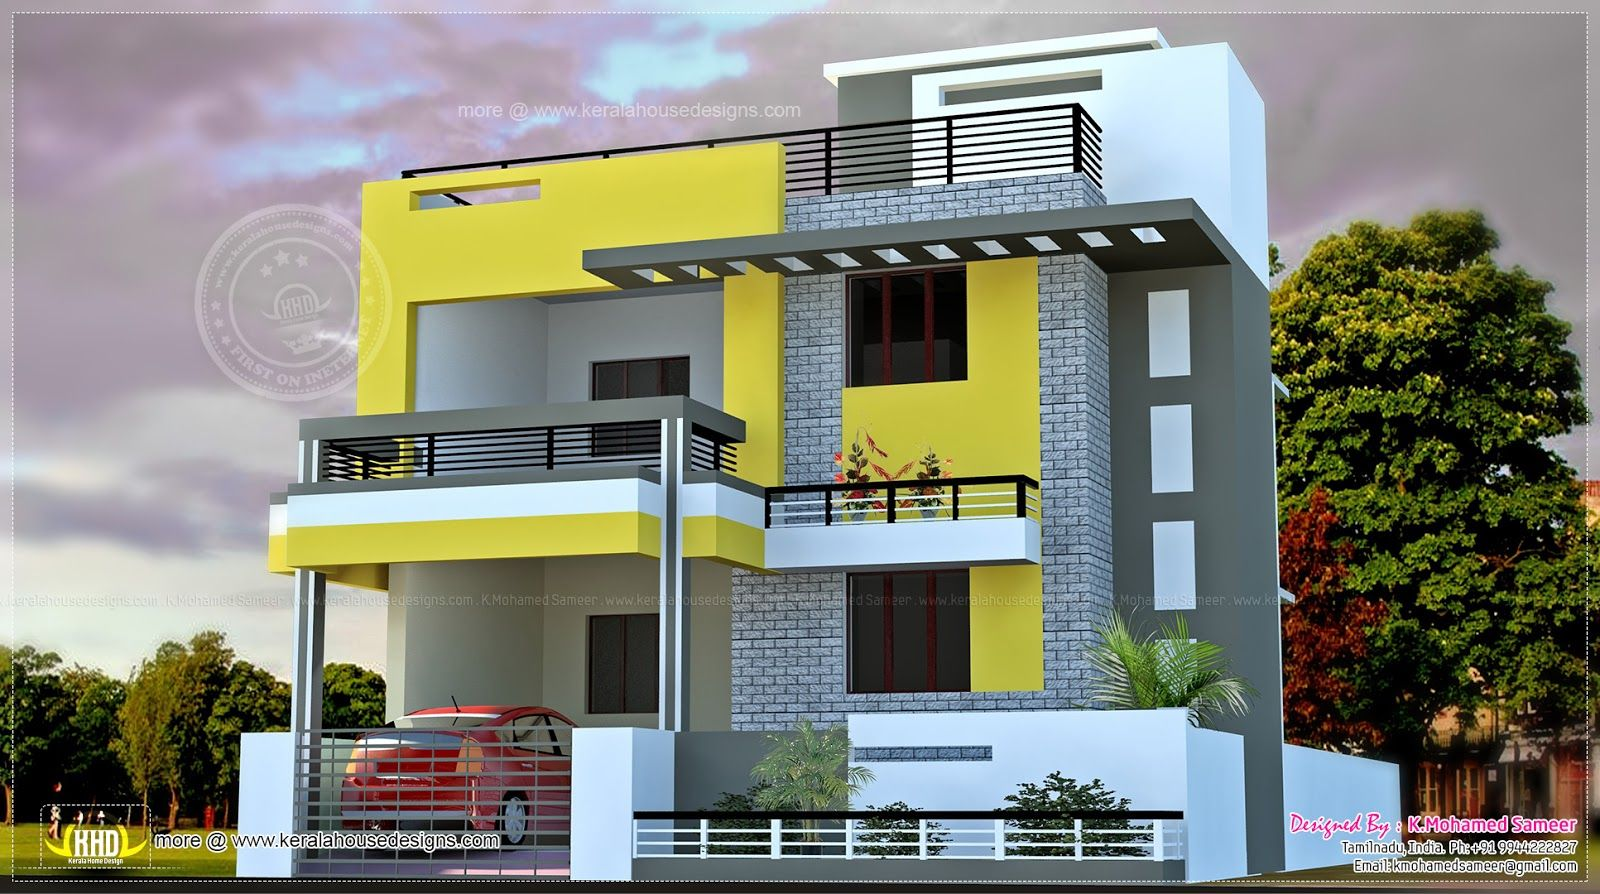 Elevations of residential buildings in indian photo for Modern villa plans and elevations